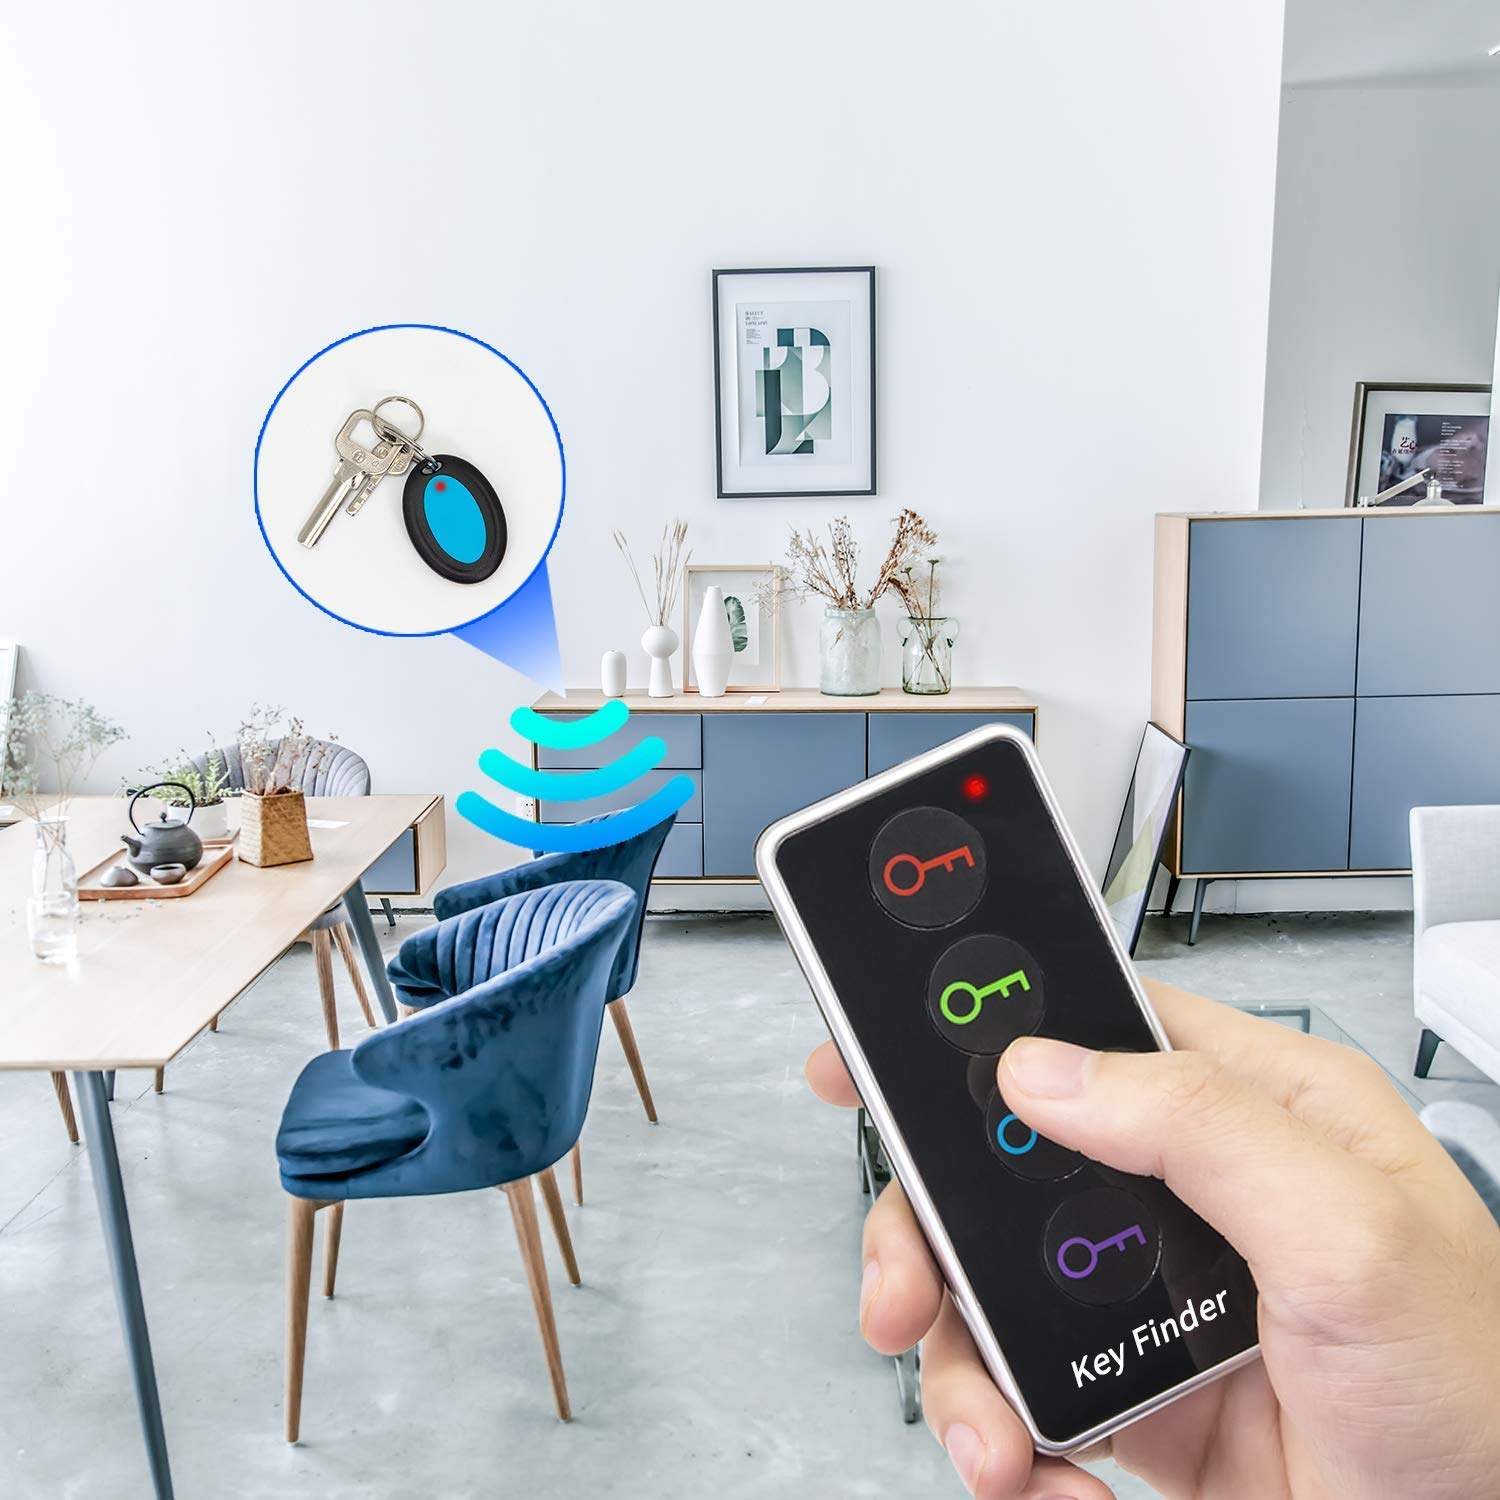 Key Finder Item Tracker Support Remote Control 100ft Range Never Lose Anything 1 RF Transmitter and 4 Receivers for Keychains Pet Tracker Wallet Tracker Car Key Chain Wireless Key RF Locator